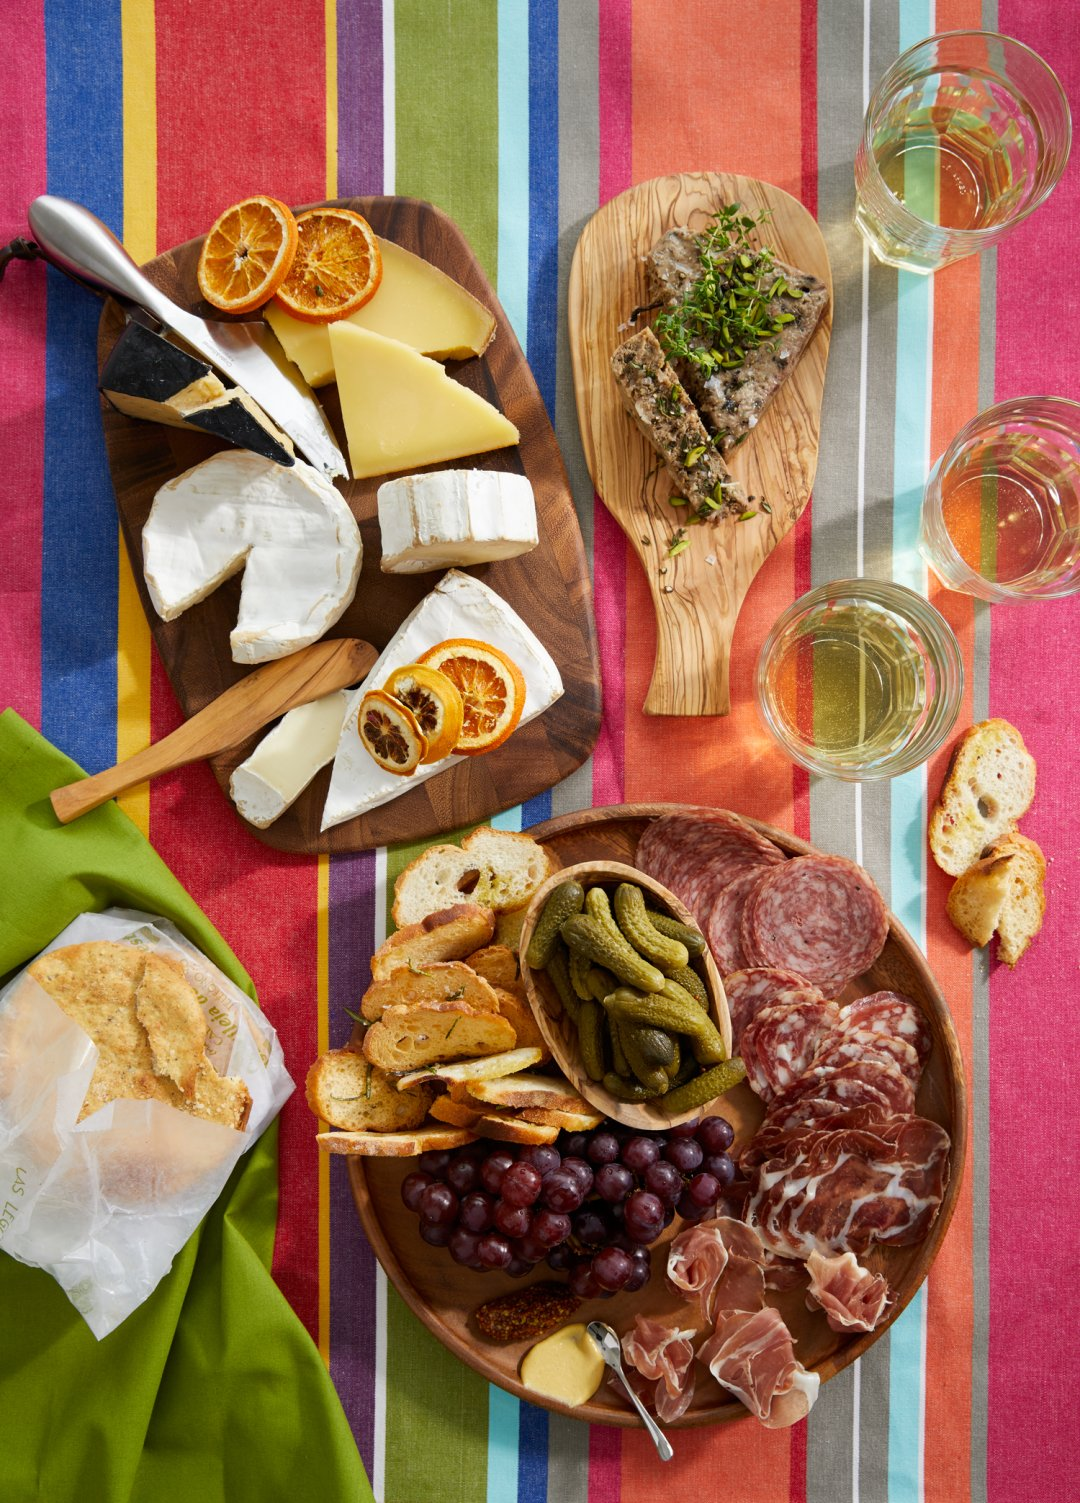 Cheese and charcuterie boards on a brightly colored striped tablecloth